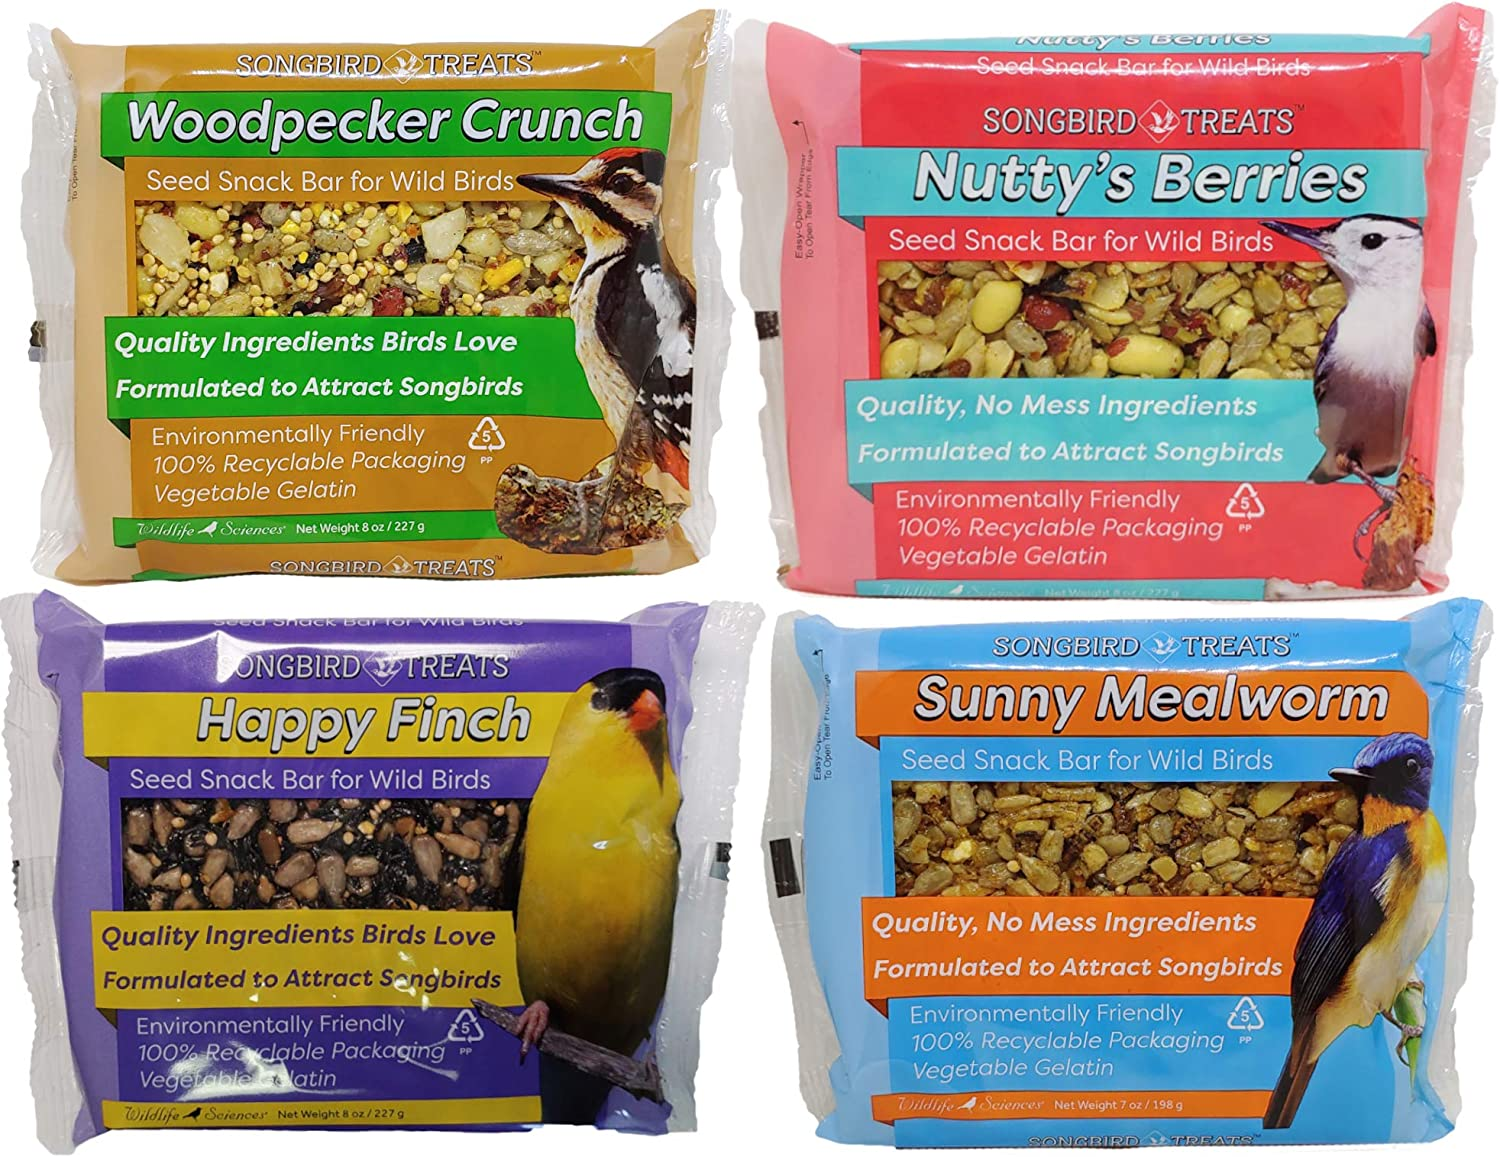 Songbird Treats Seed Cake Variety 4 Pack of Seed Cakes | 8 oz Bird Seed Cakes for Wild Birds